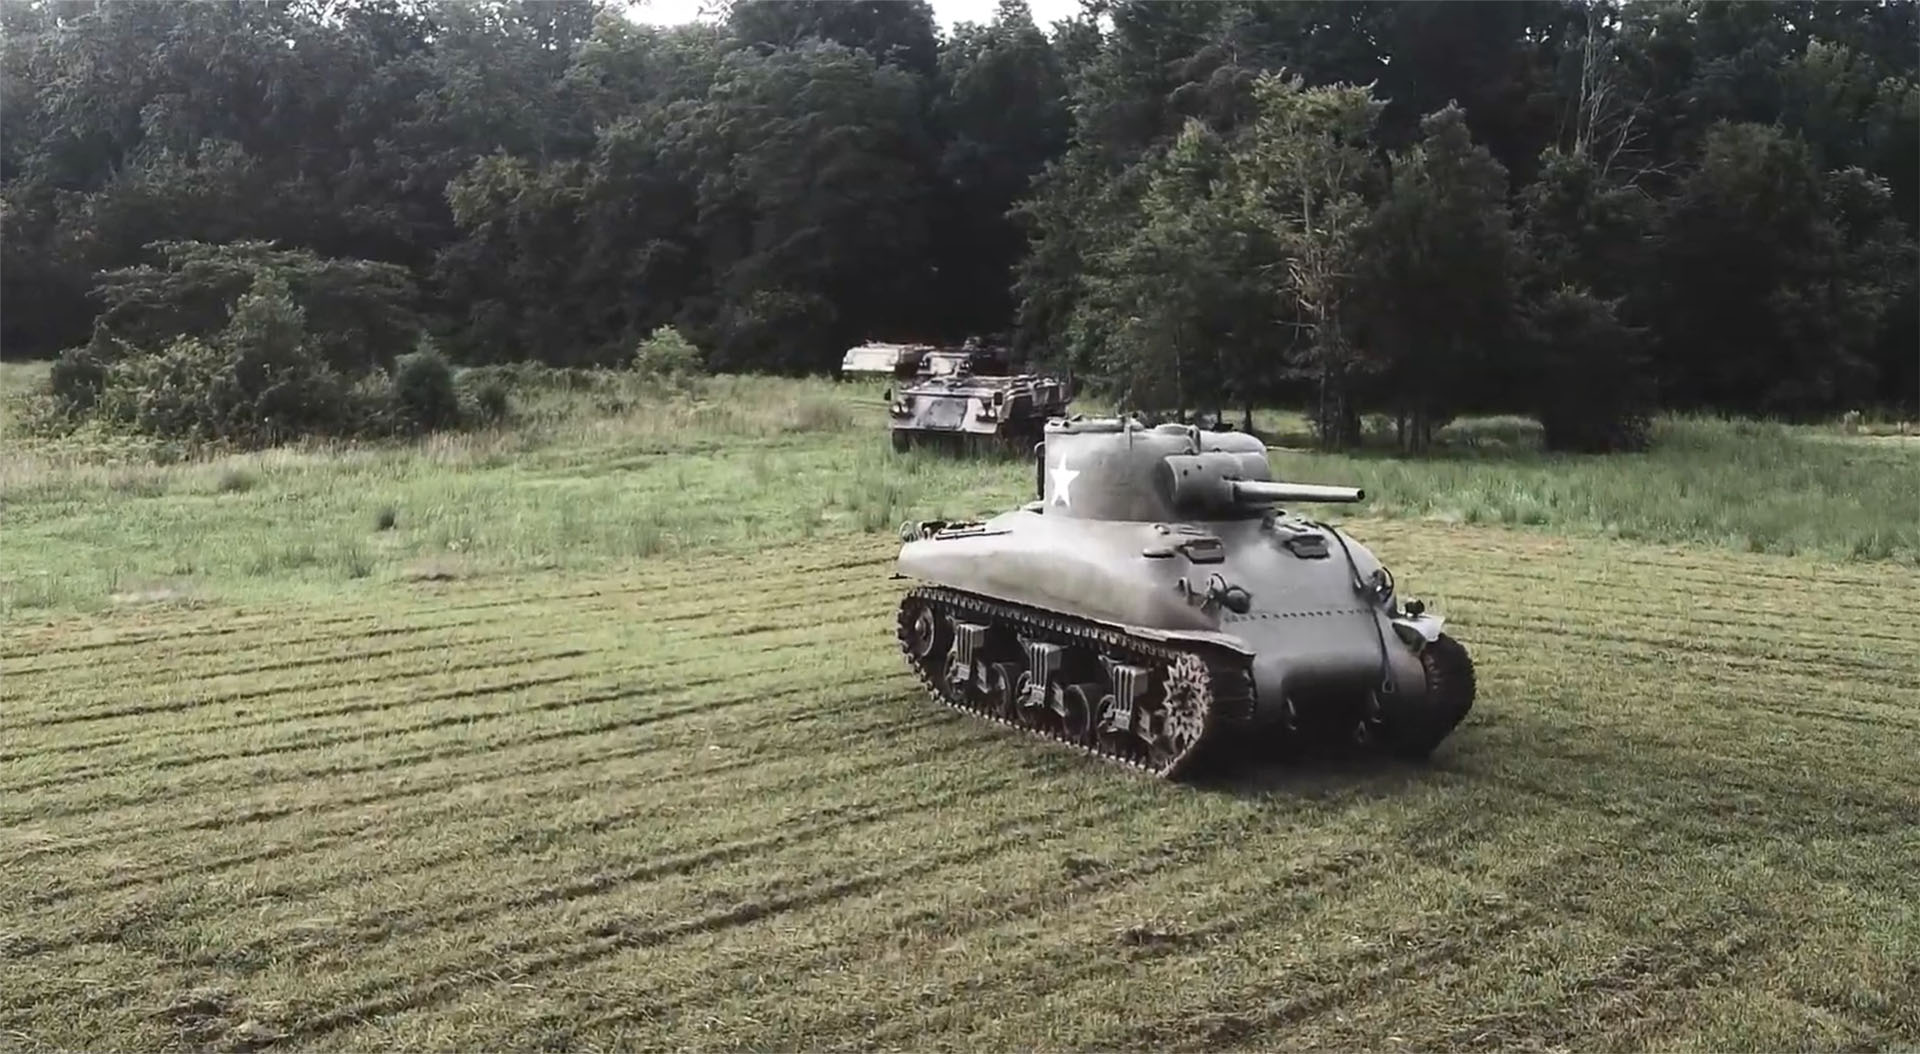 Military tanks to be featured at Tank Farm Open House